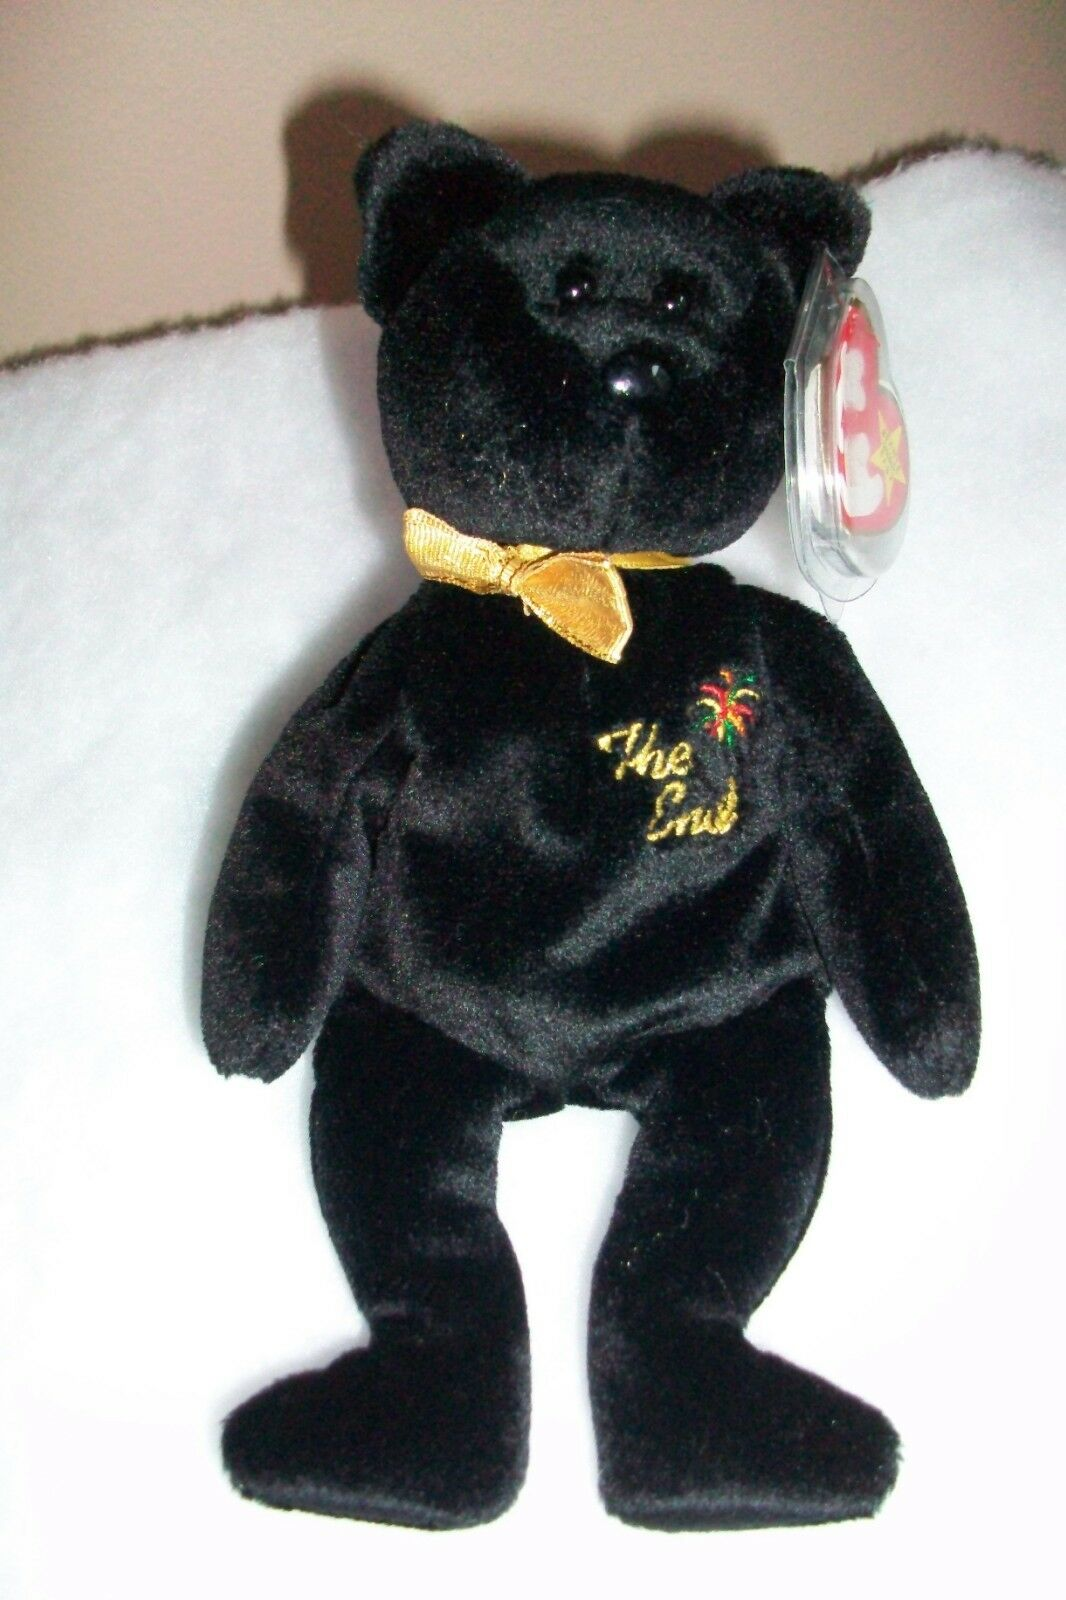 40e286bfe46 Retired Ty Beanie Baby 1999 The End with Errors -Very Rare - New with Mint